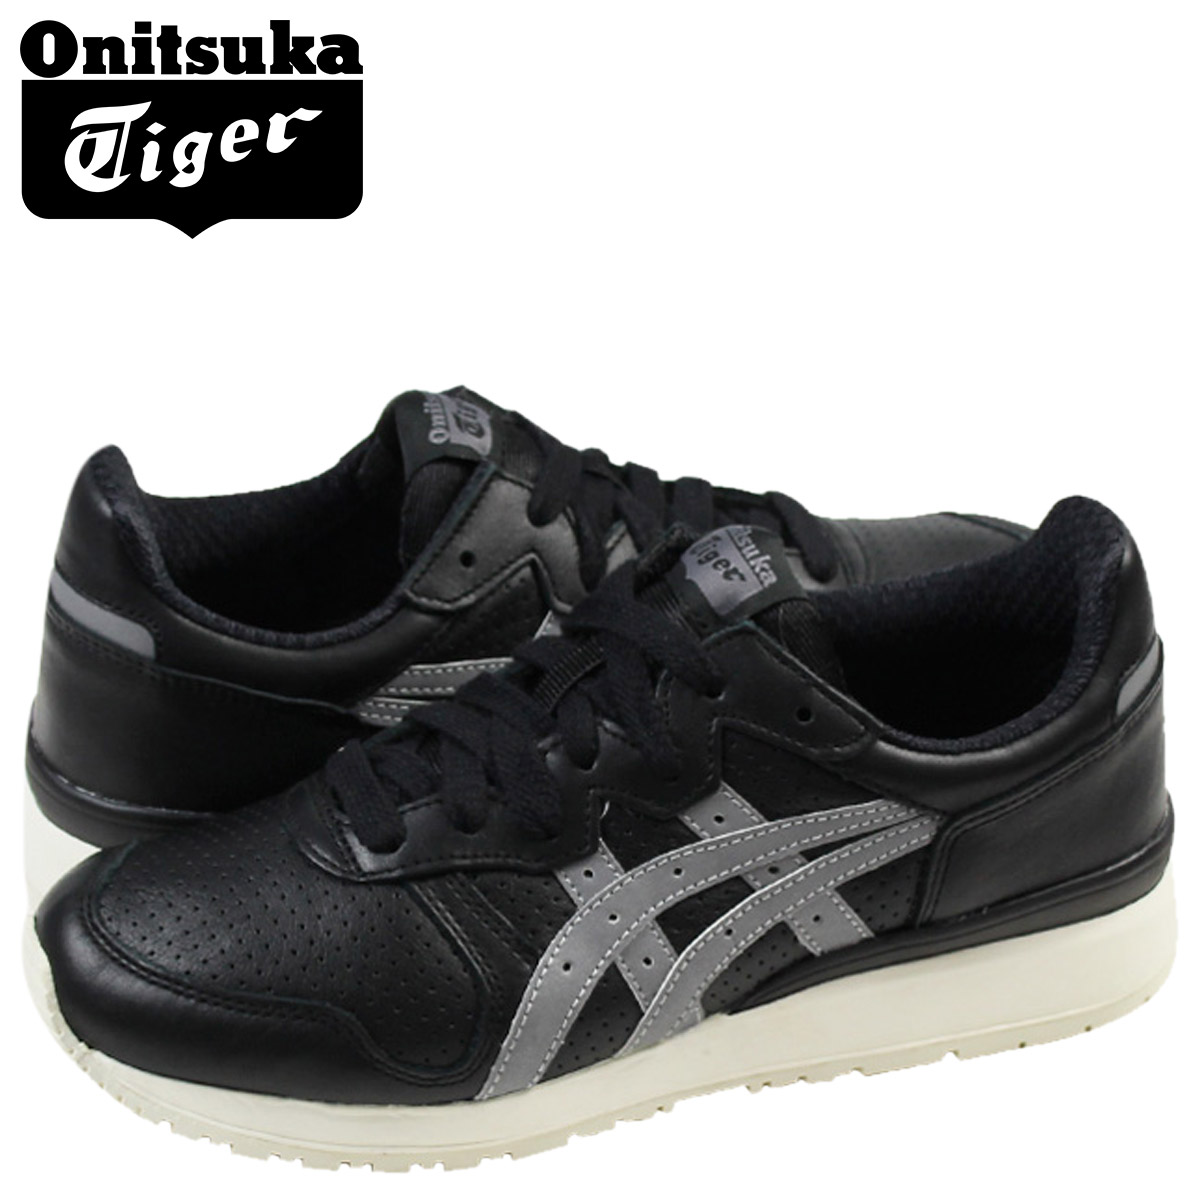 newest c6ab3 8a41b Point 2 x ONITSUKA Tiger ASICs Onitsuka Tiger asics women's TIGER ALLIANCE  sneakers Tiger Alliance leather black TH4B 3L-9090 [5 / 13 new in stock] ...